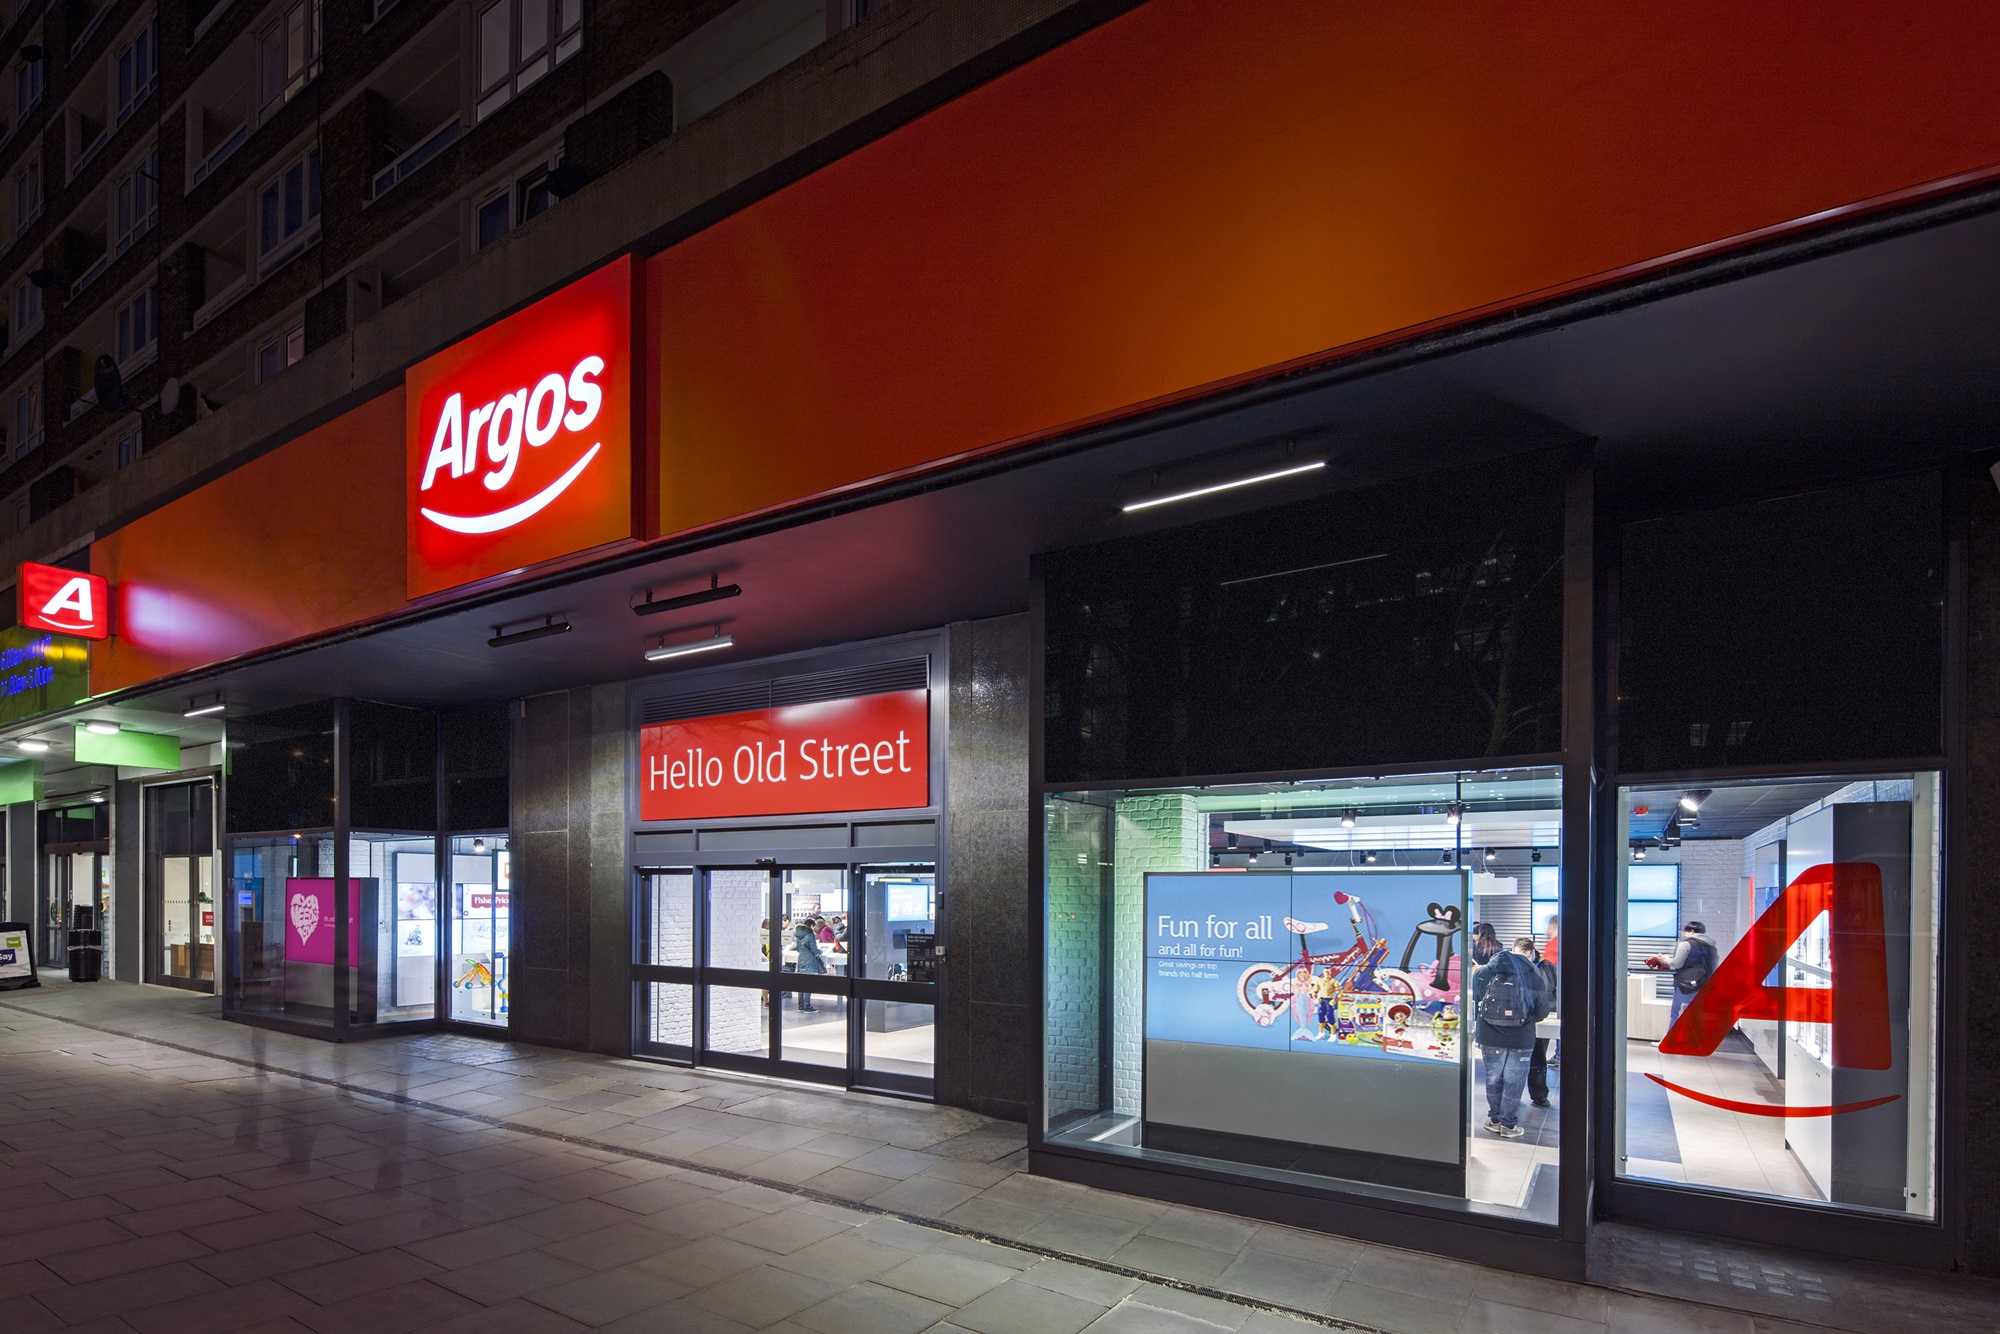 marketing argos Argos marketing delivers results we are a b2b marketing services firm providing customized solutions to empower your brand our consultative approach and innovative solutions help you build customer relationships that will grow your company.